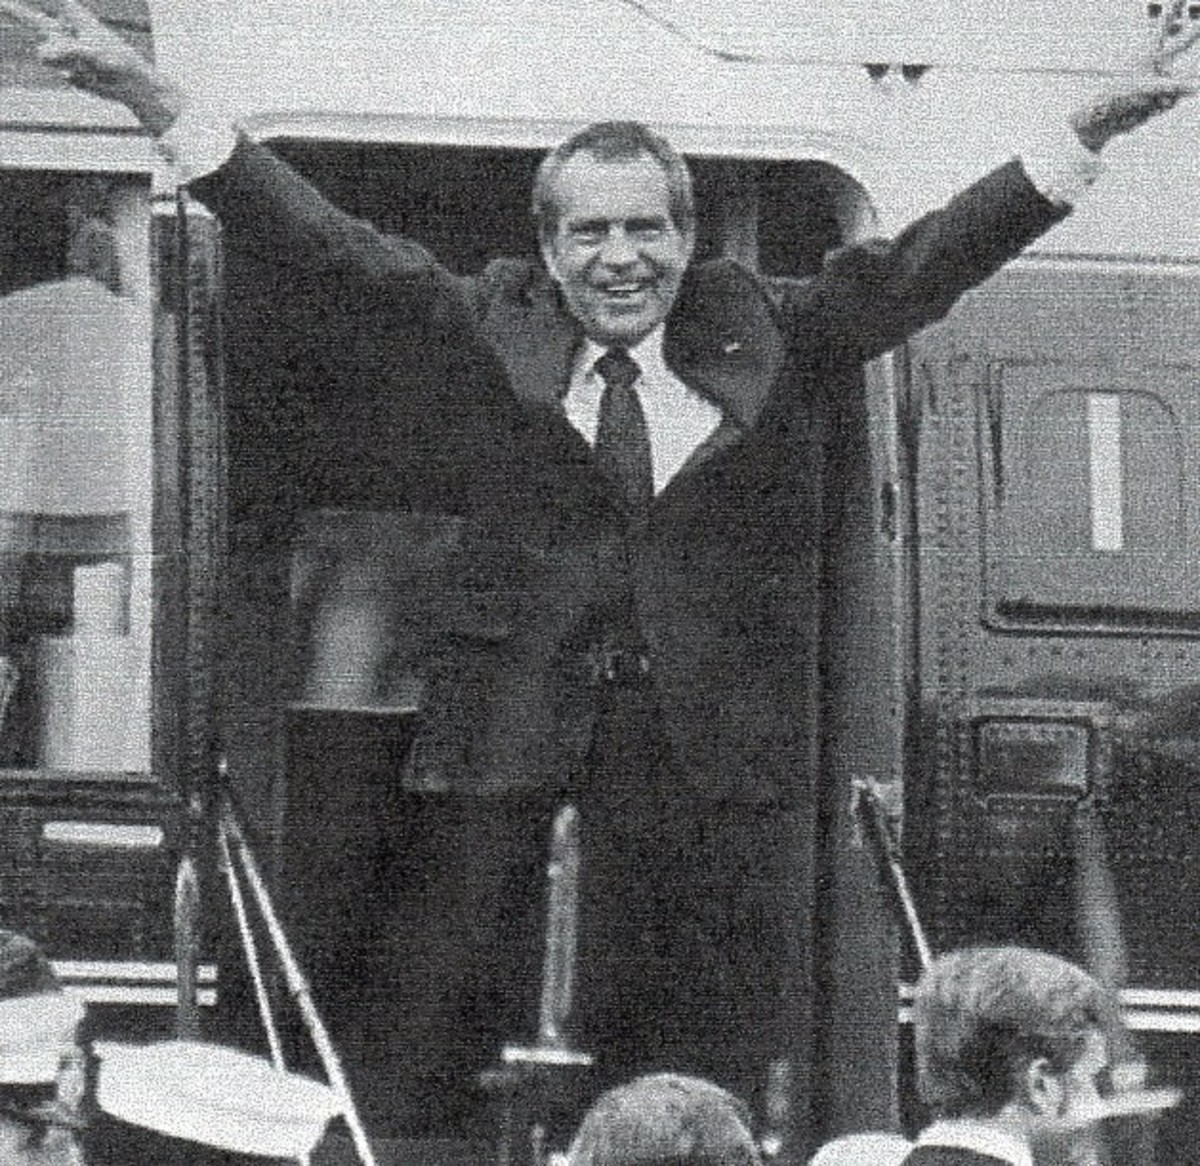 Richard M. Nixon, the thirty-seventh president,1969-1974 arrived in office in controversy and left in more. He also added 200 billion to the debt.